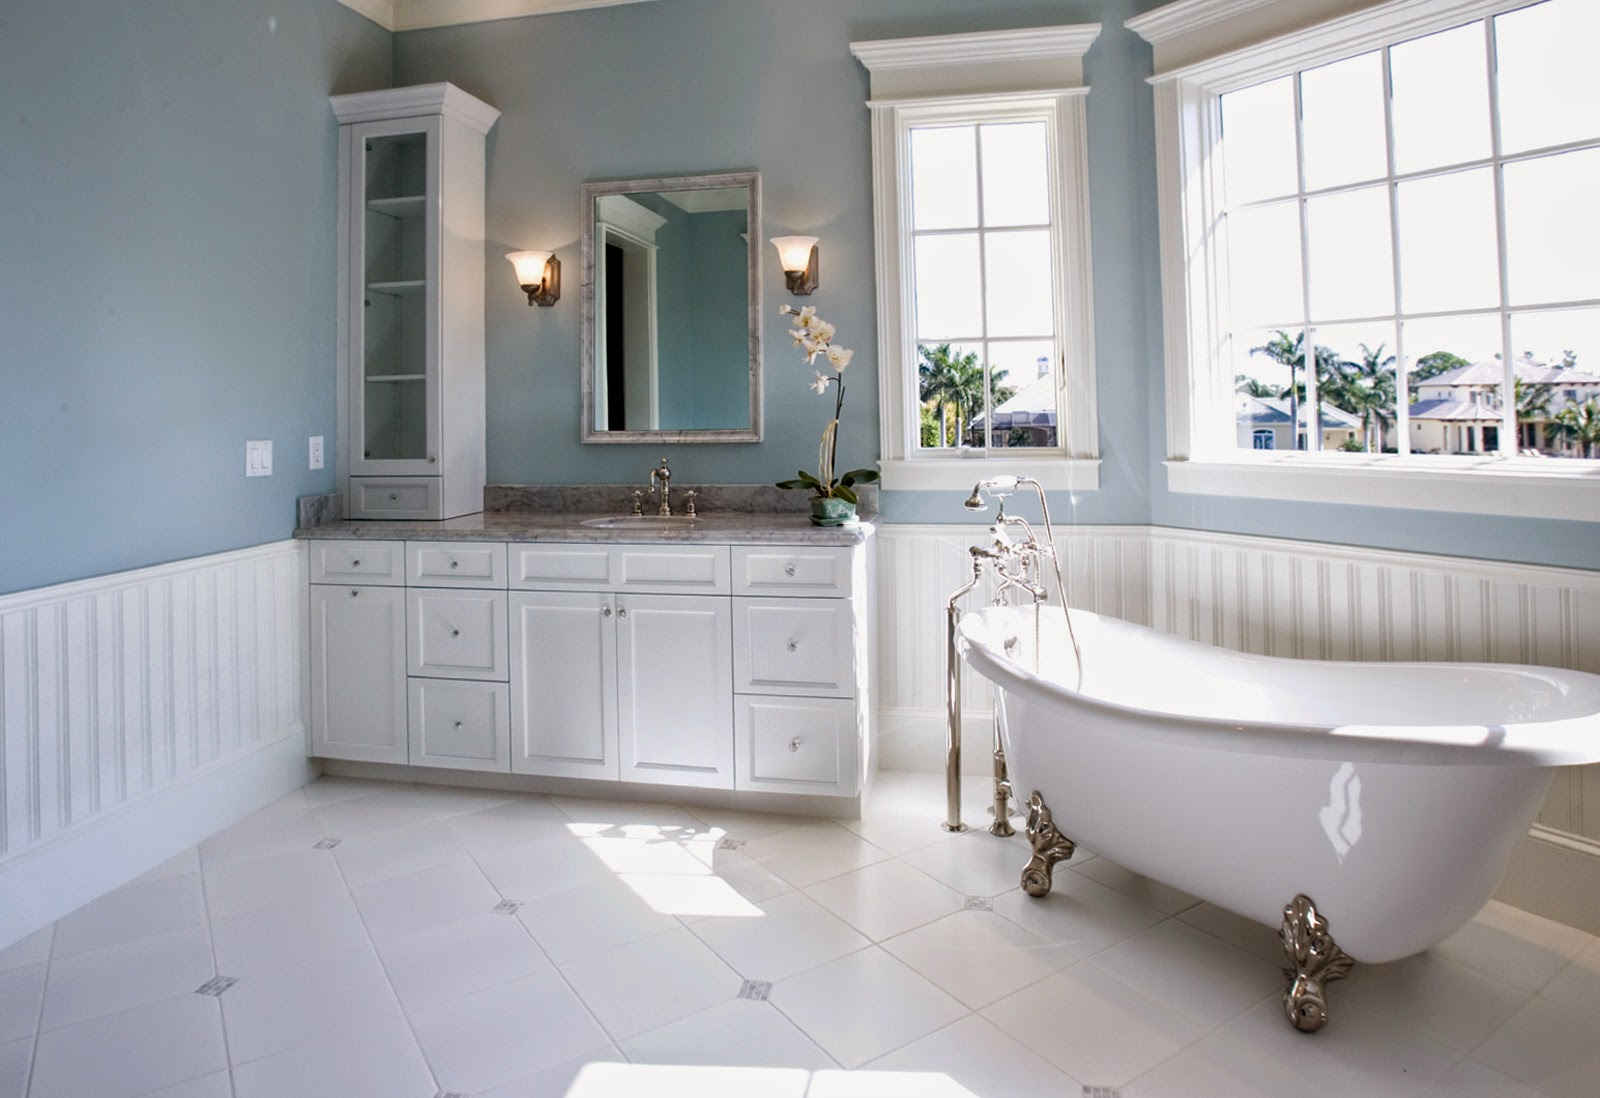 Top 10 beautiful bathroom design 2014 home interior blog for Design of the bathroom